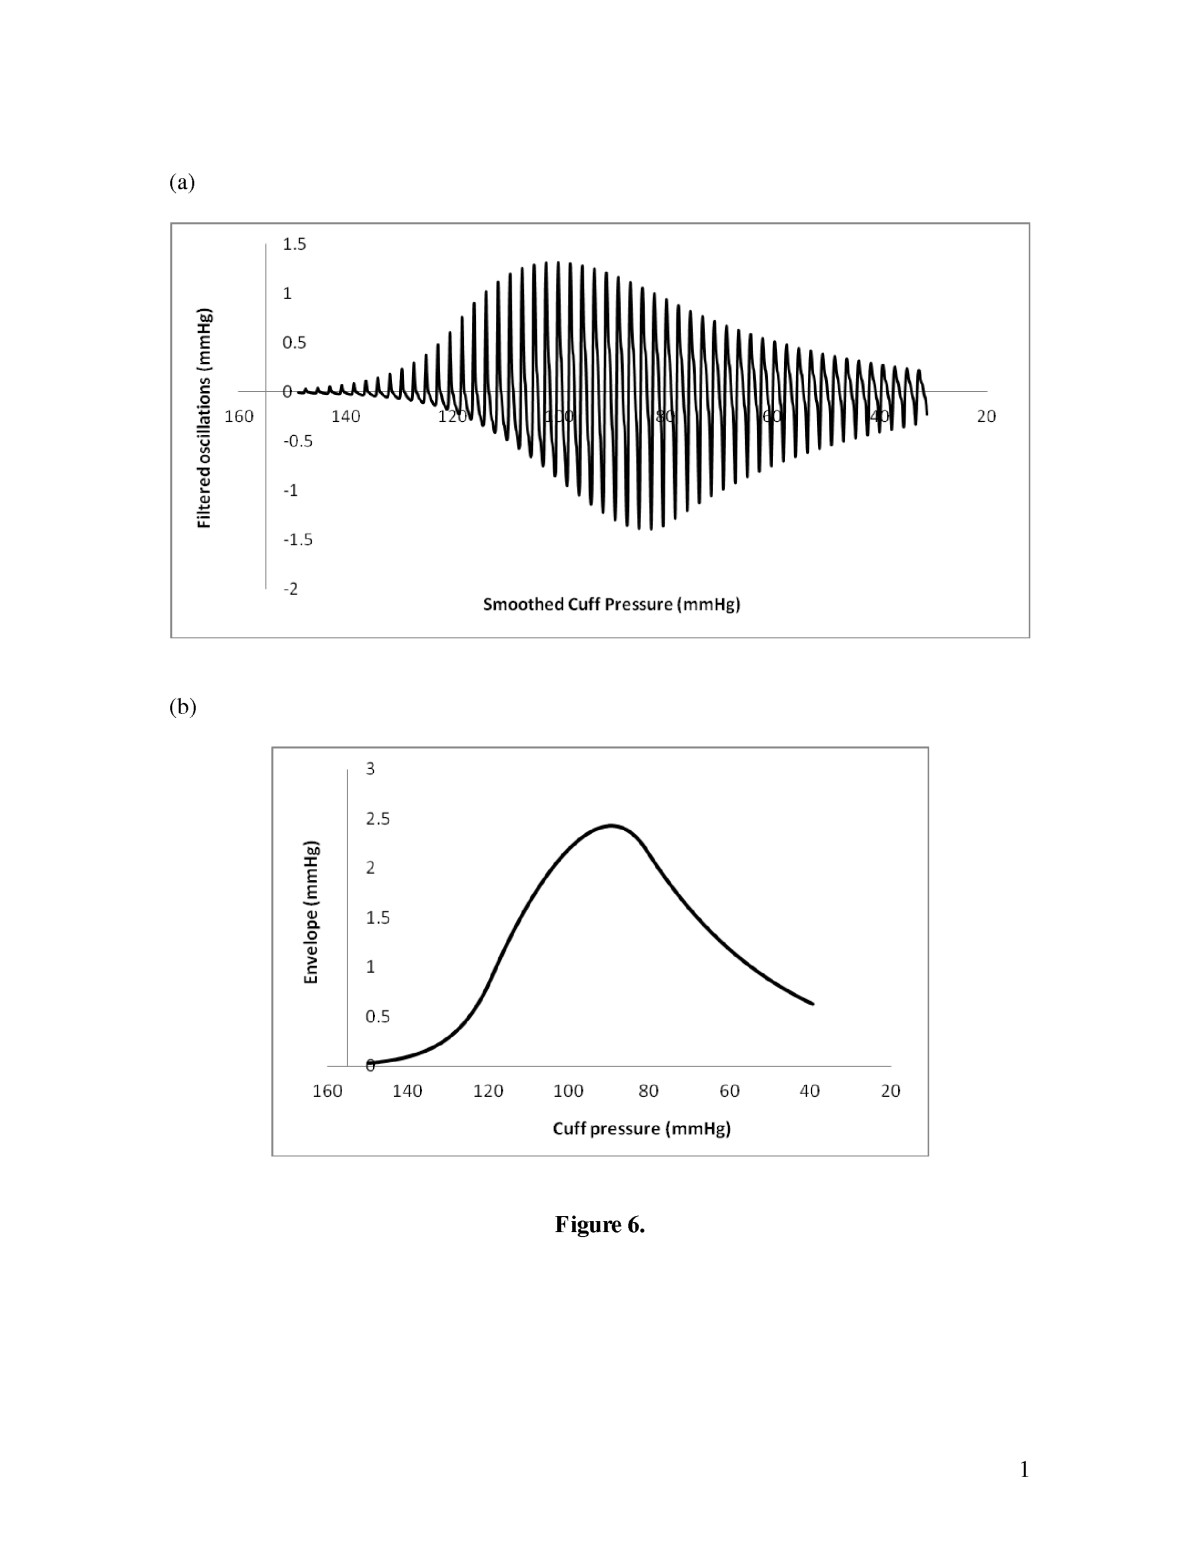 https://static-content.springer.com/image/art%3A10.1186%2F1475-925X-11-56/MediaObjects/12938_2012_Article_601_Fig6_HTML.jpg